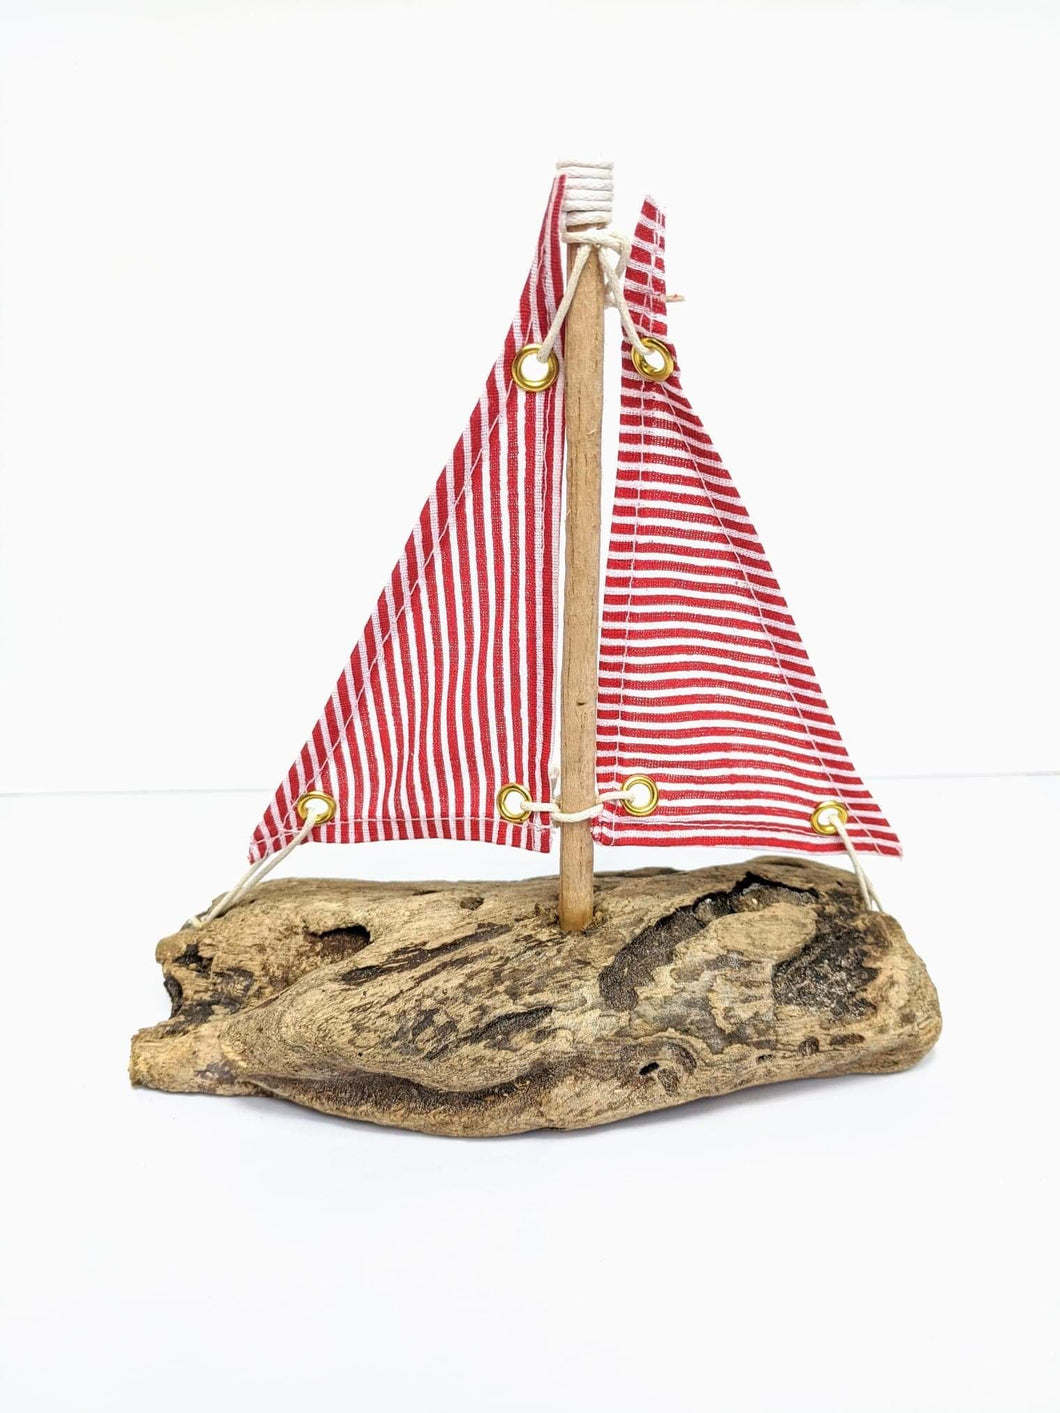 Driftwood Boat with Red and White Striped Sails